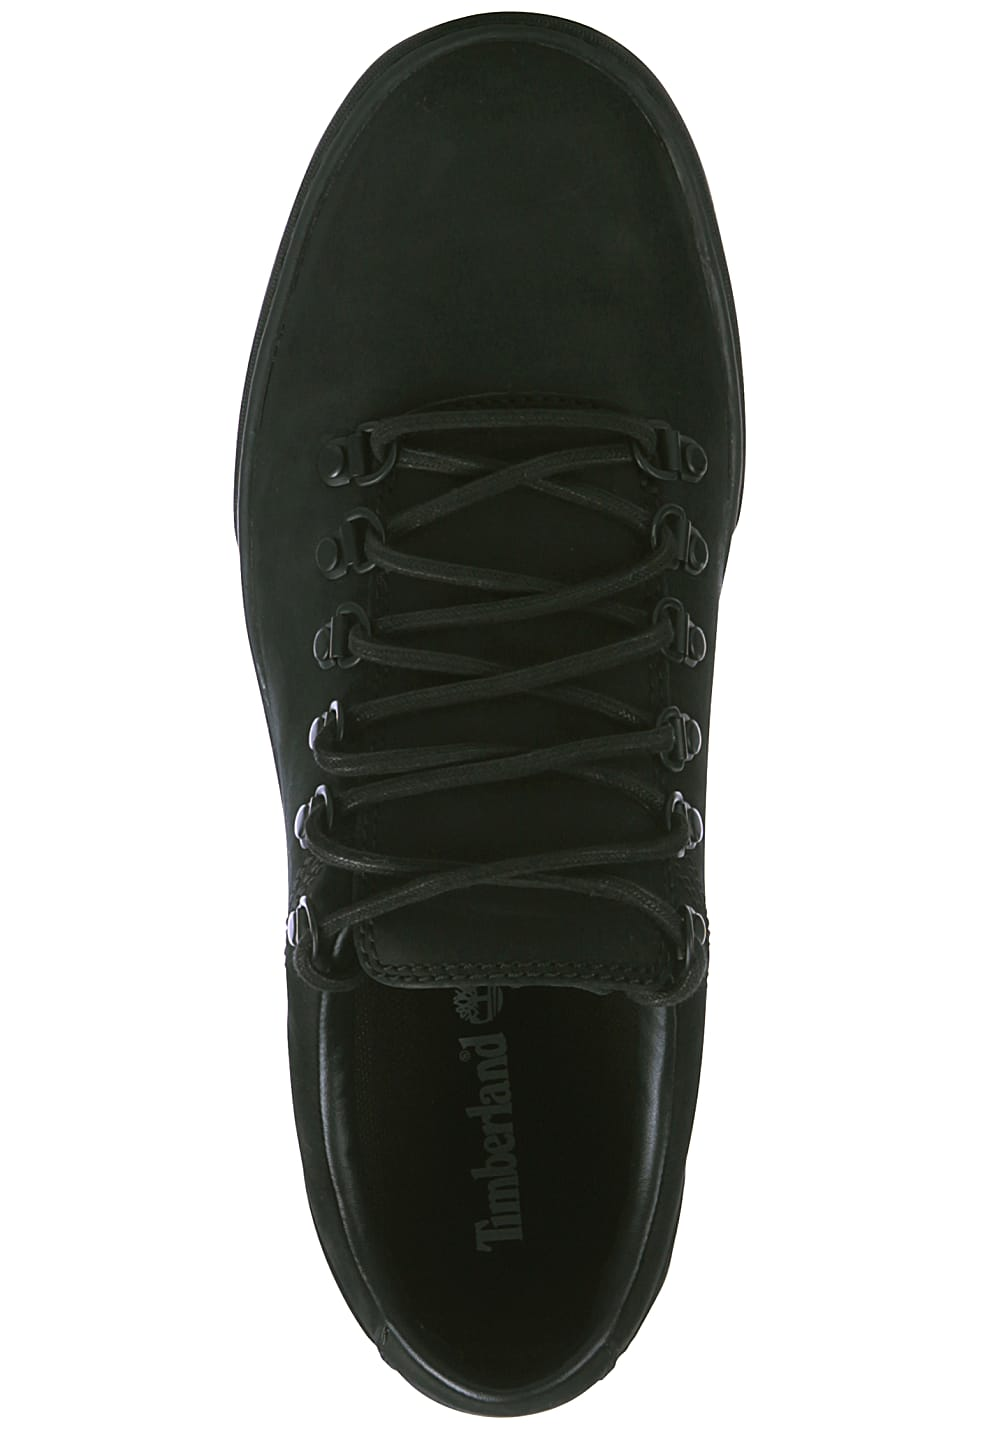 adventure 2.0 cupsole alpine oxford for men in black